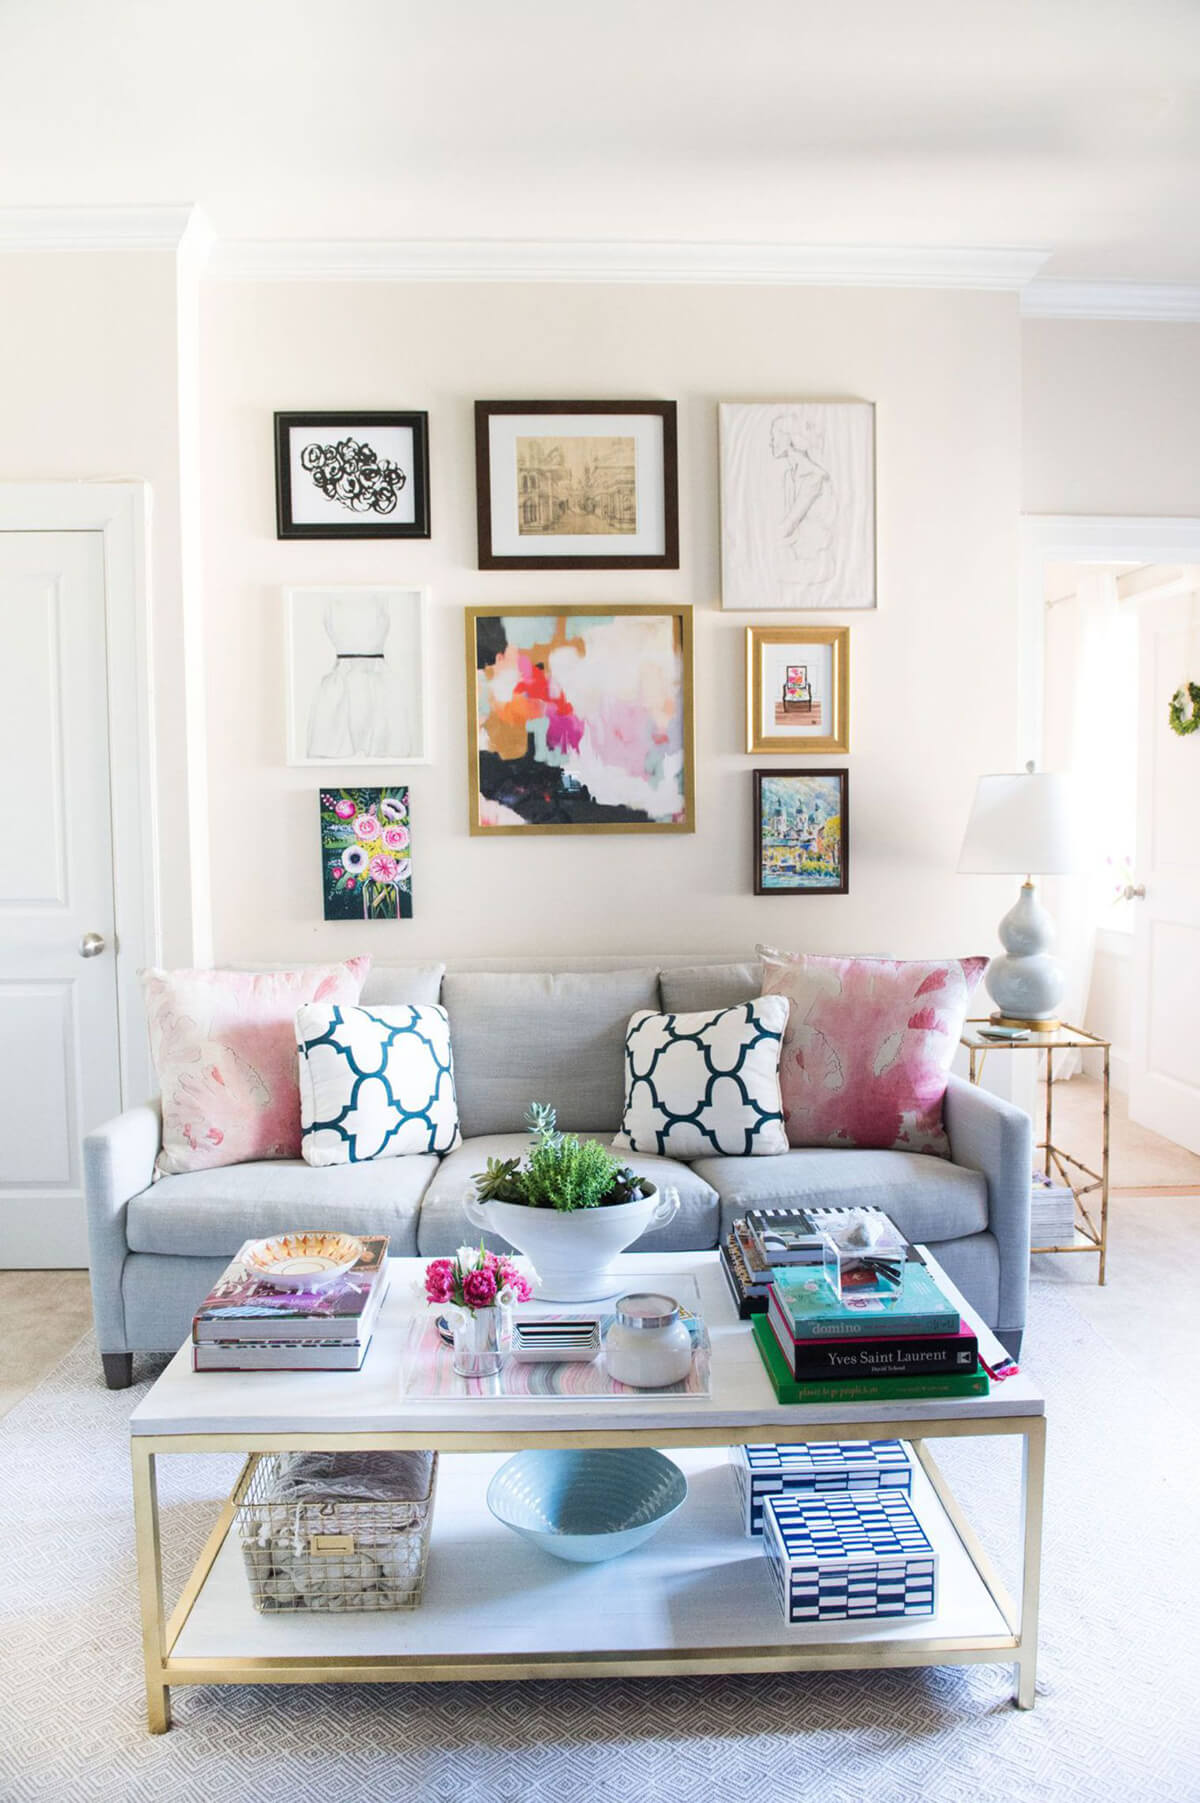 20 Best Small Apartment Living Room Decor and Design Ideas ... on Small Living Room Decorating Ideas  id=63522